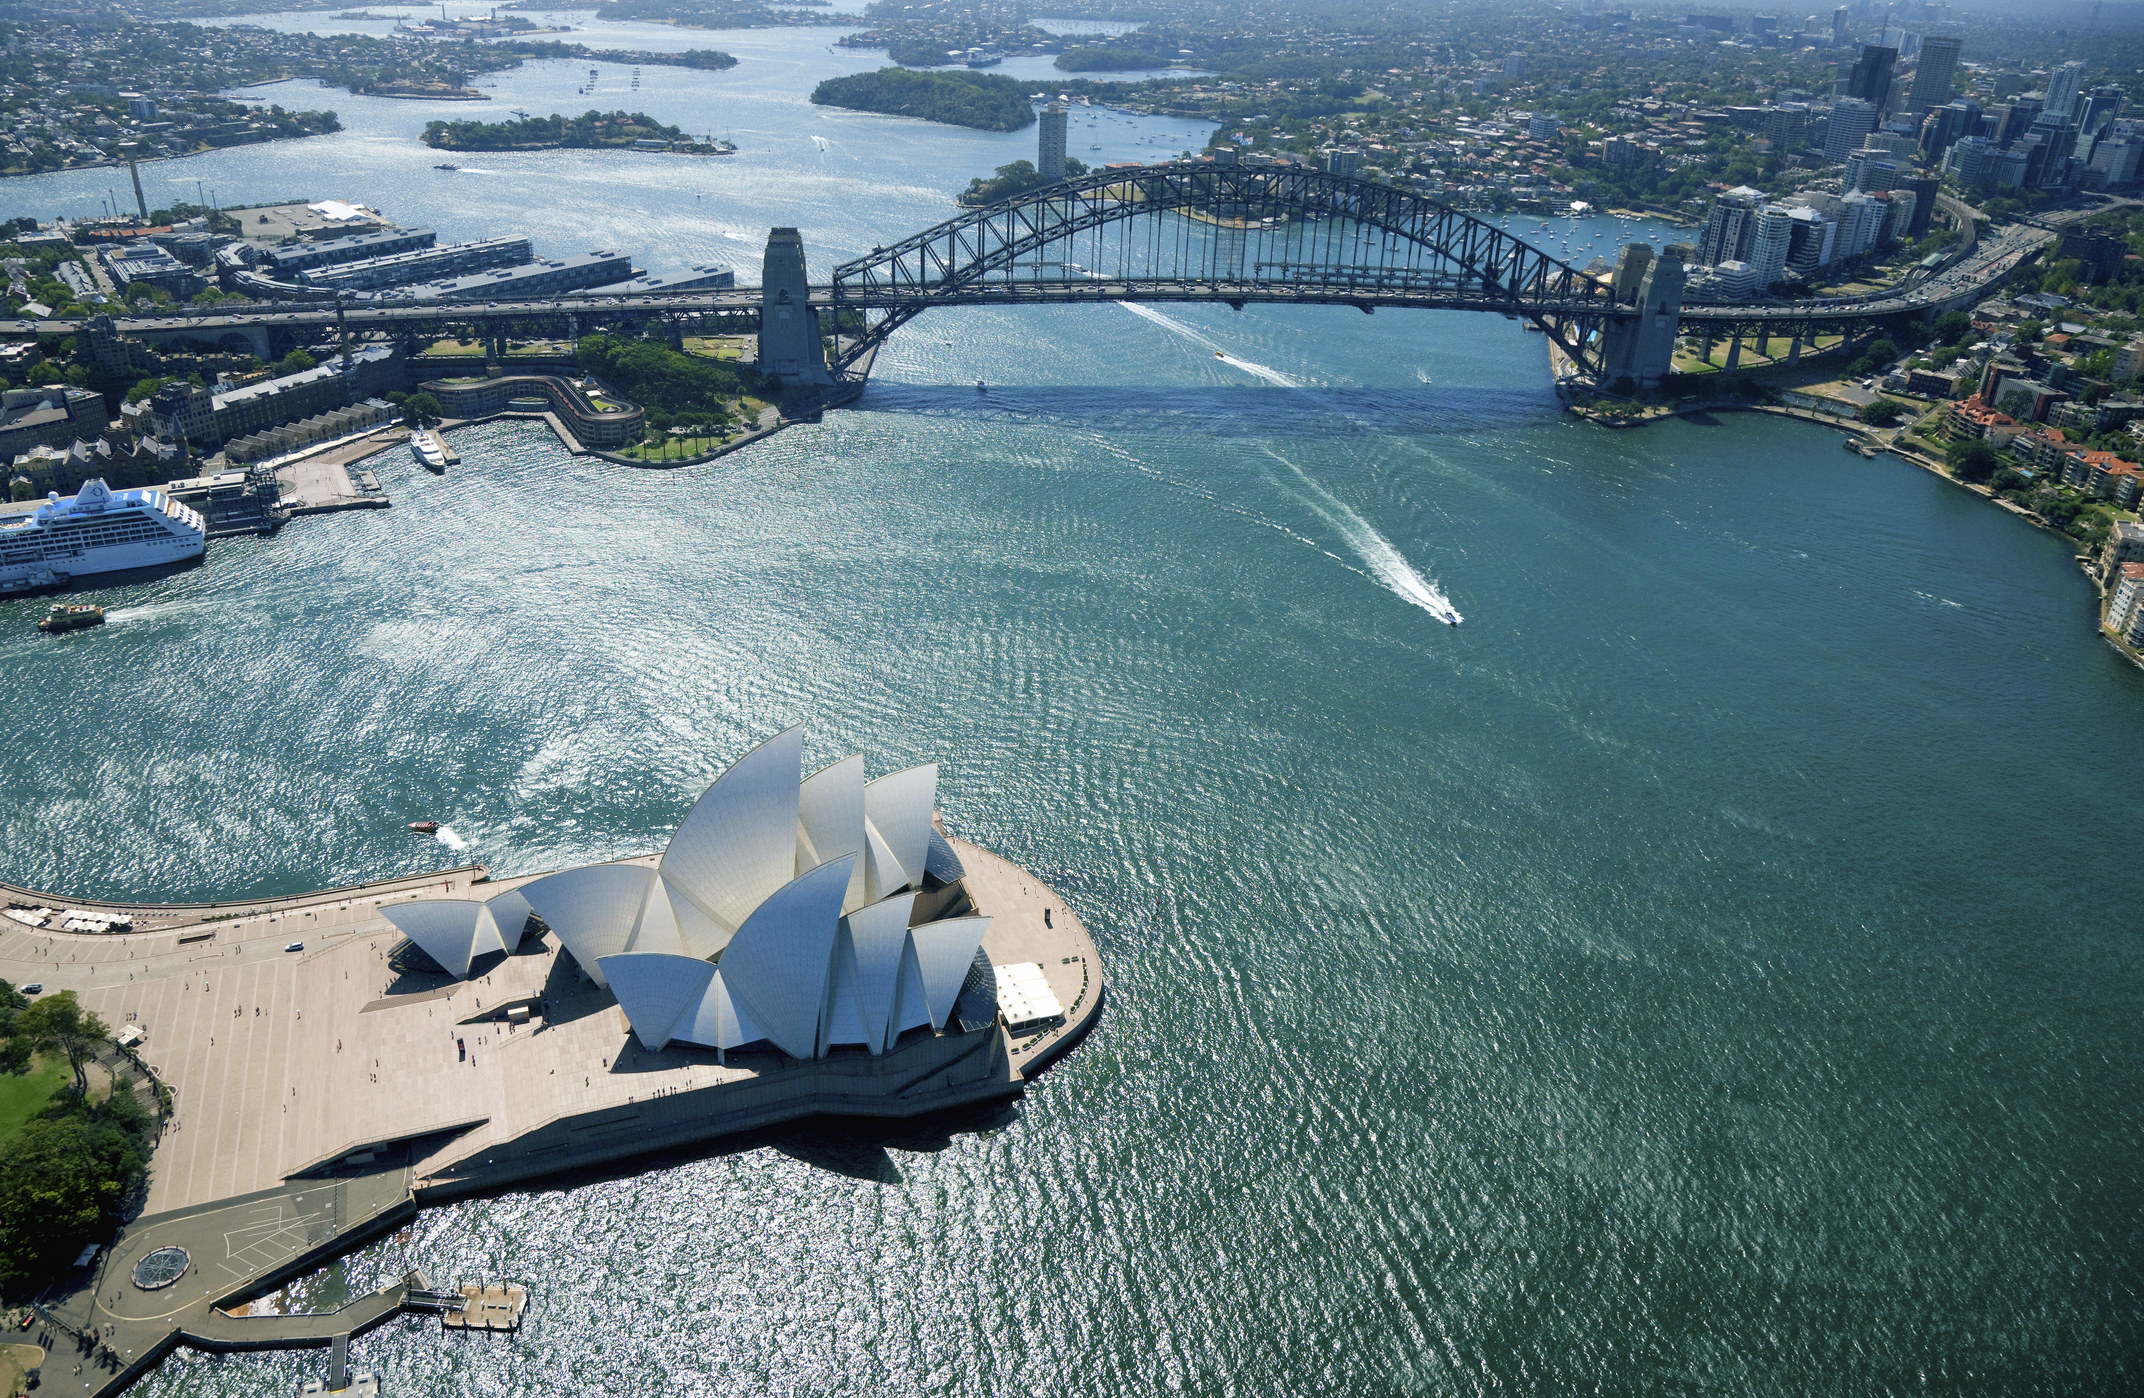 An aerial view of the Sydney Opera House.